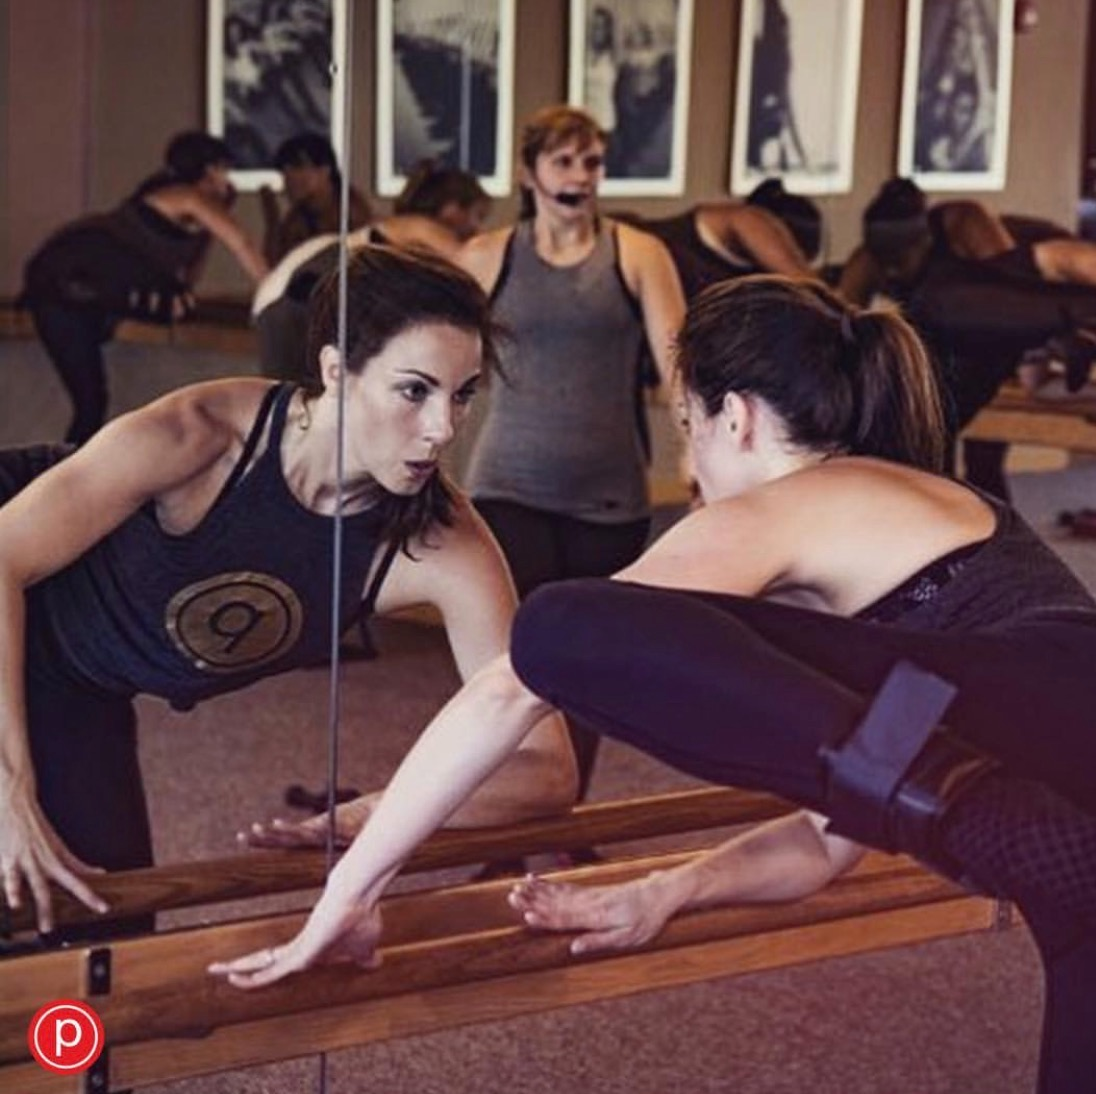 Photo Credit: Pure Barre